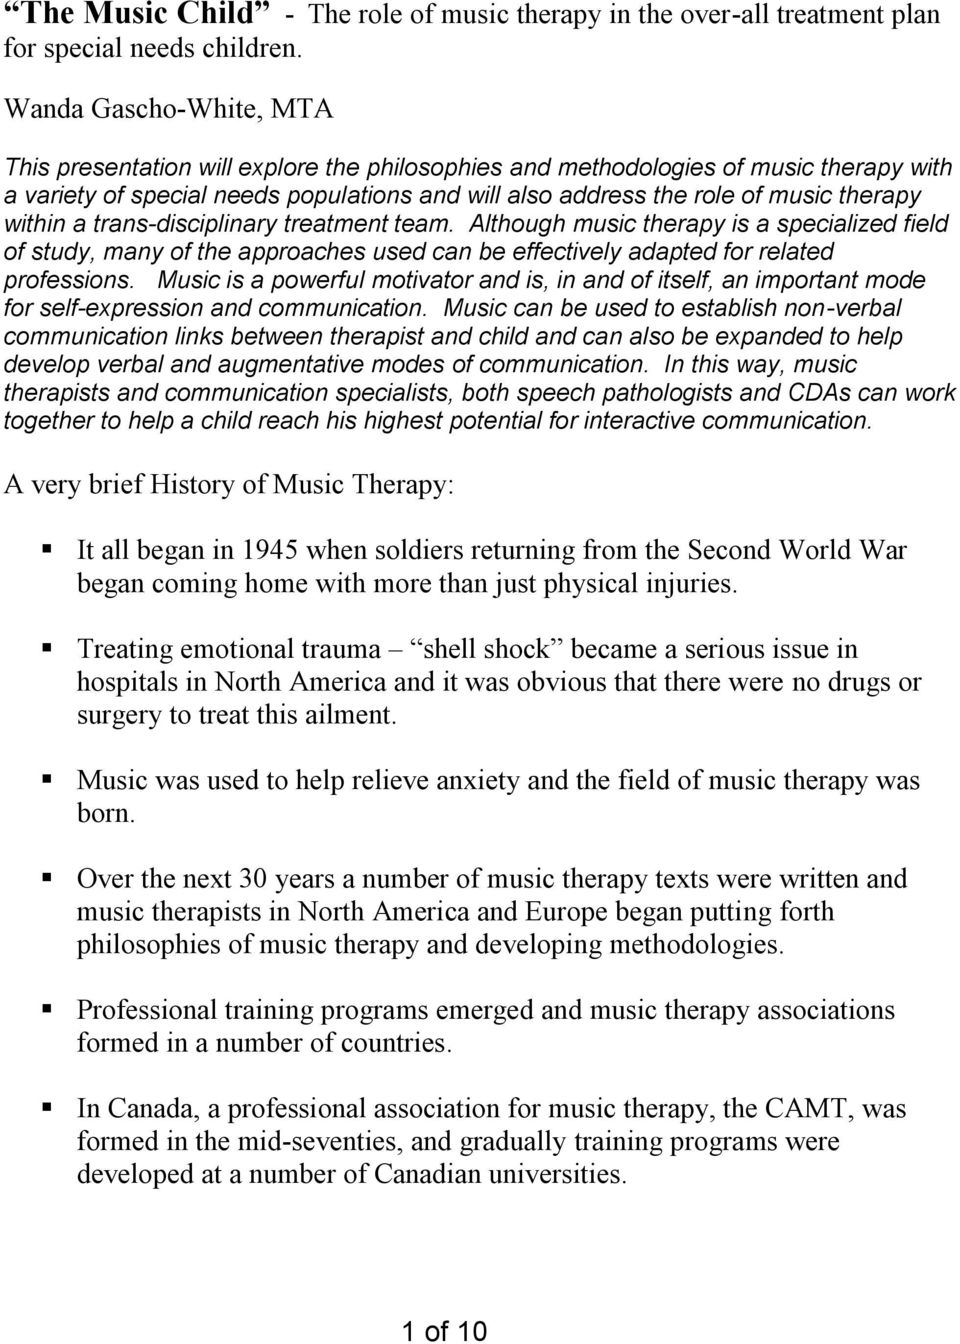 within a trans-disciplinary treatment team. Although music therapy is a specialized field of study, many of the approaches used can be effectively adapted for related professions.